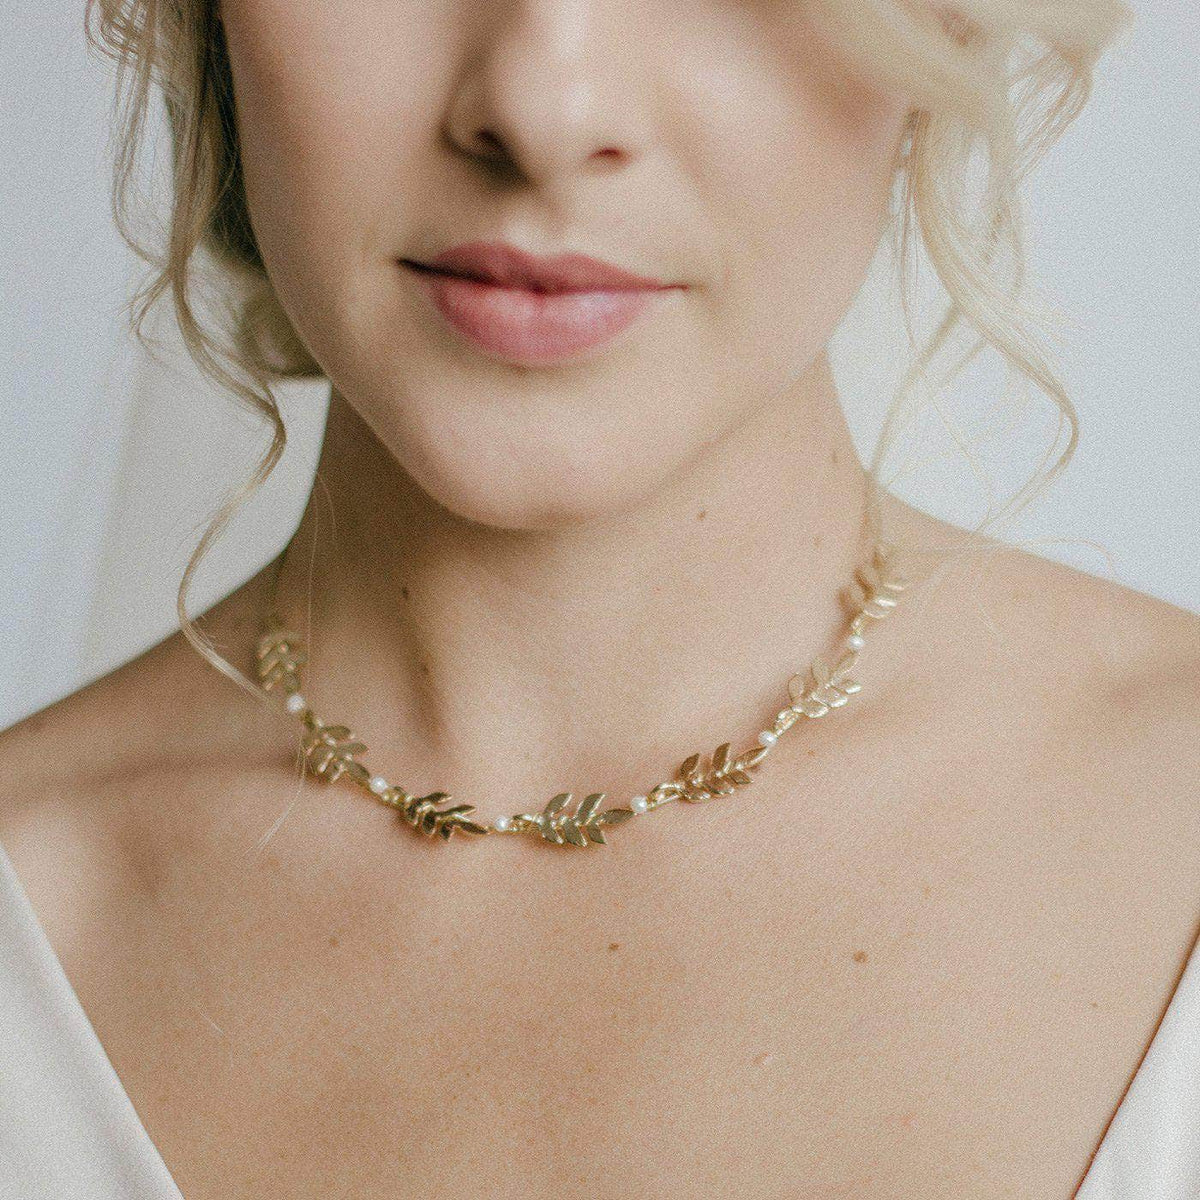 Wedding Necklace Gold Gold leaf wedding necklace with freshwater pearls - 'Avanie'